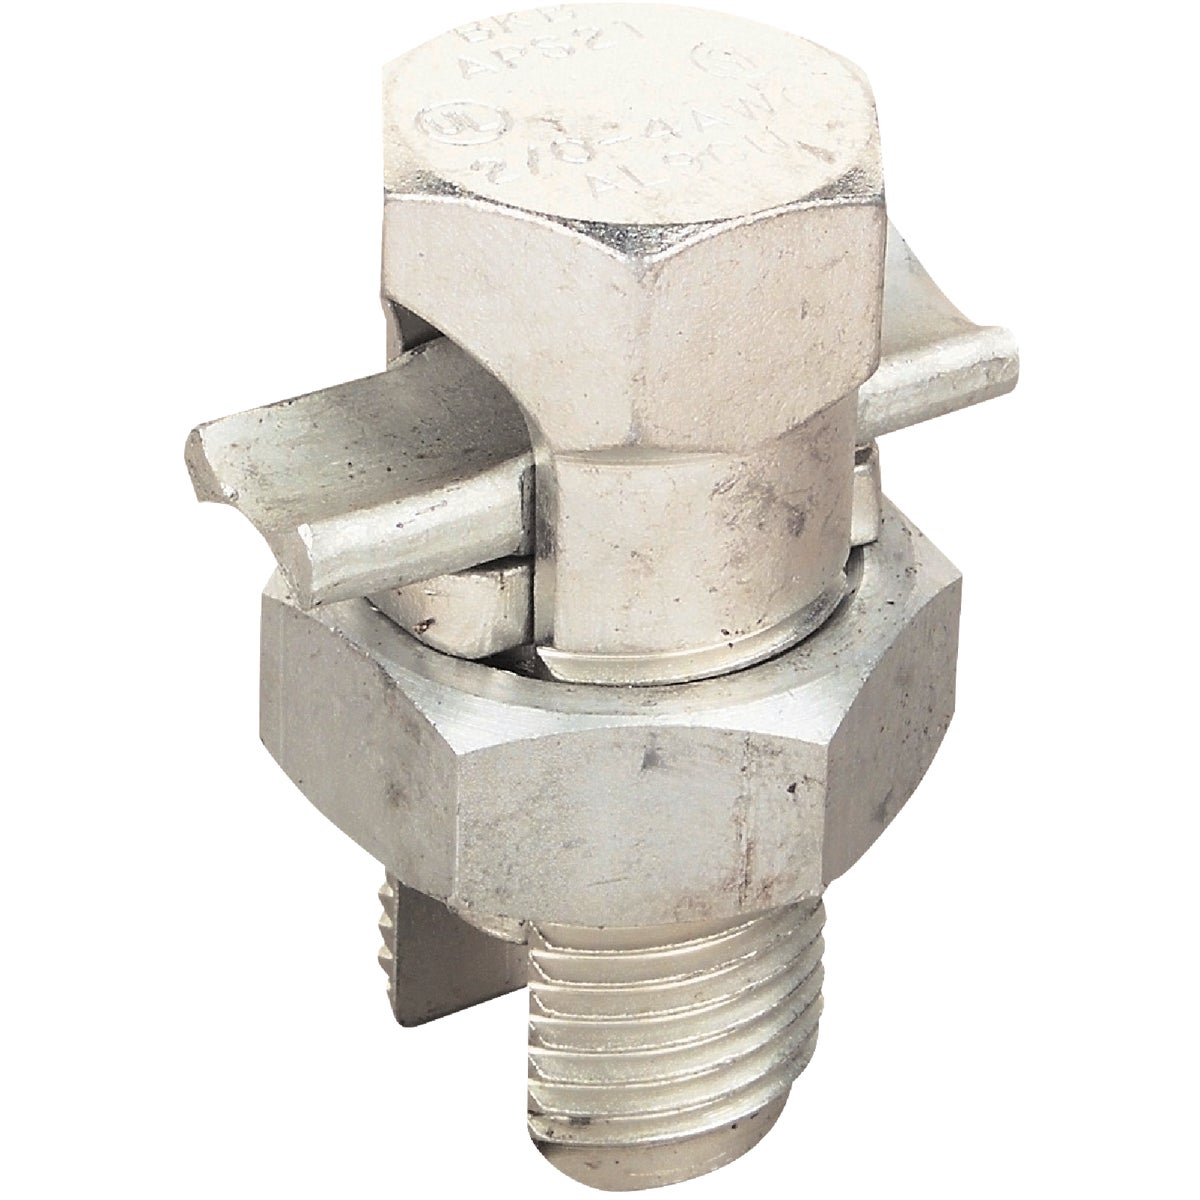 SPLIT BOLT CONNECTOR - APS04 by Thomas & Betts